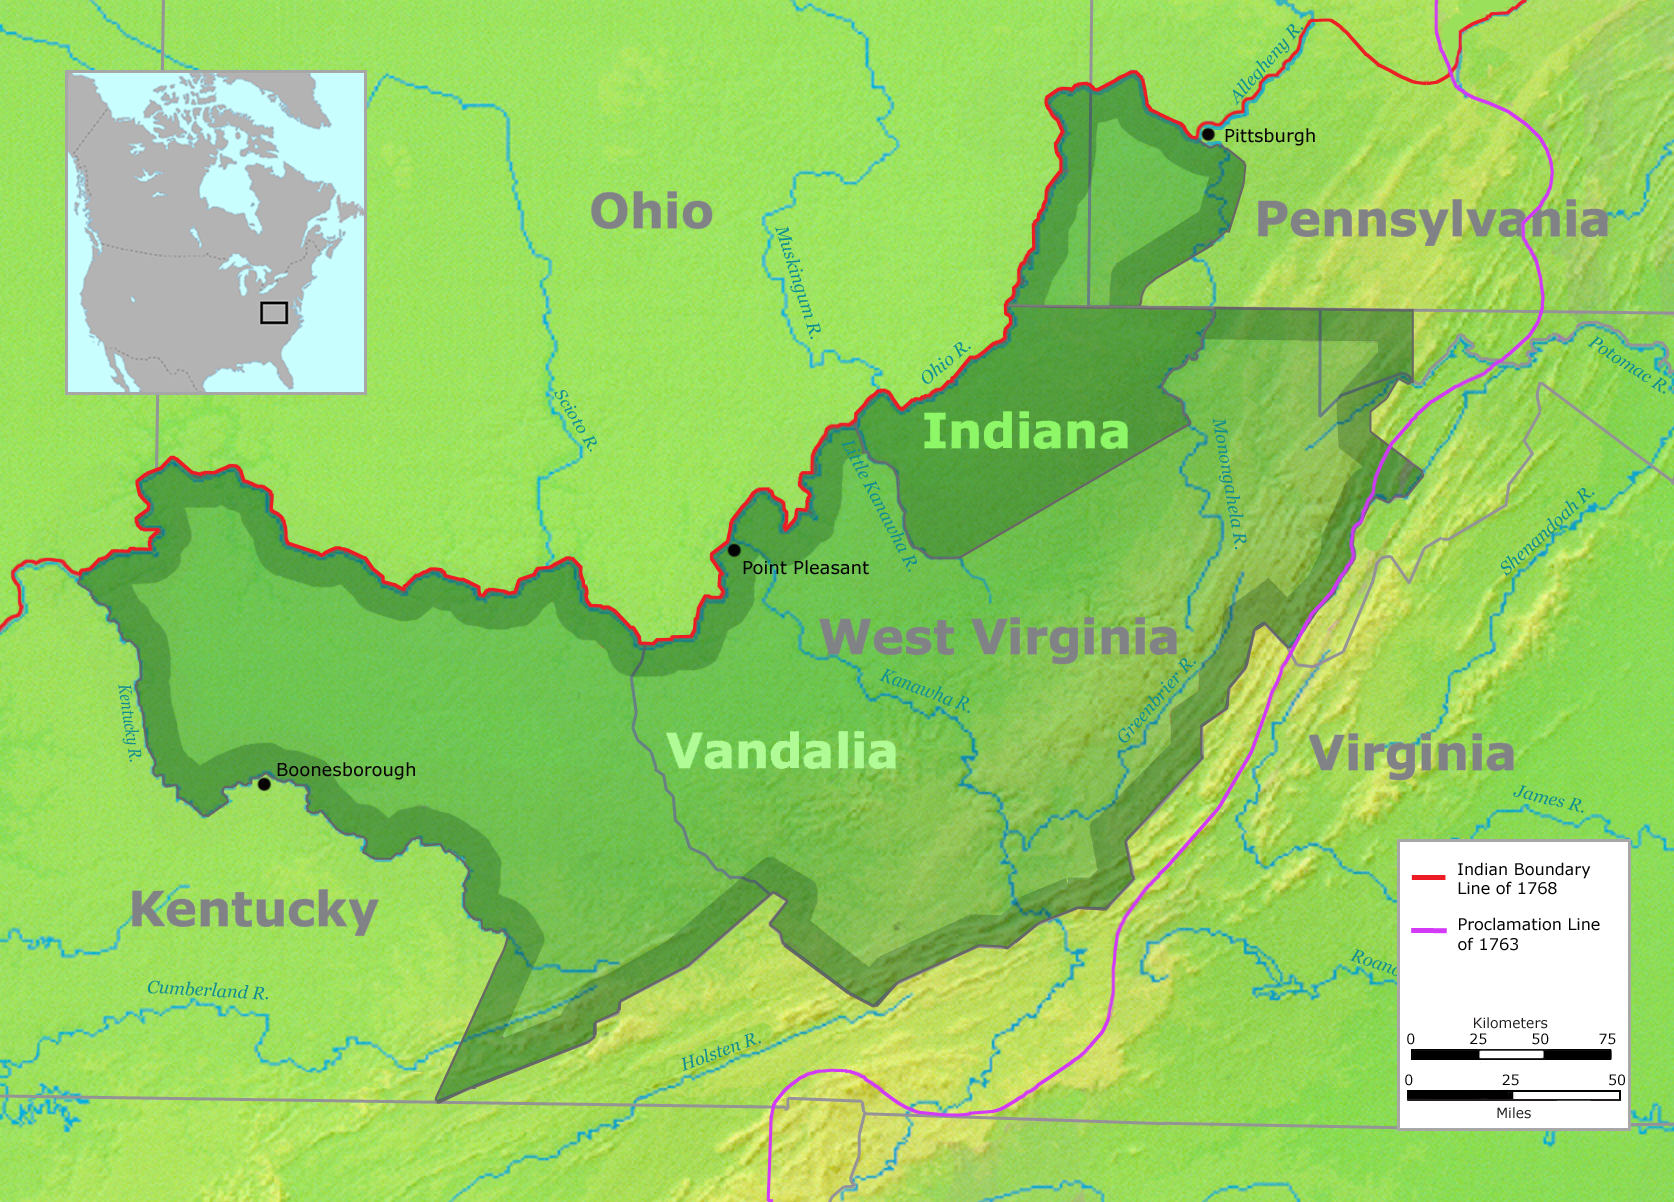 Vandalia was the name in the late 1700s of a proposed British colony in North America. The colony would have been located south of the Ohio River, primarily in what are now West Virginia and northeastern Kentucky.